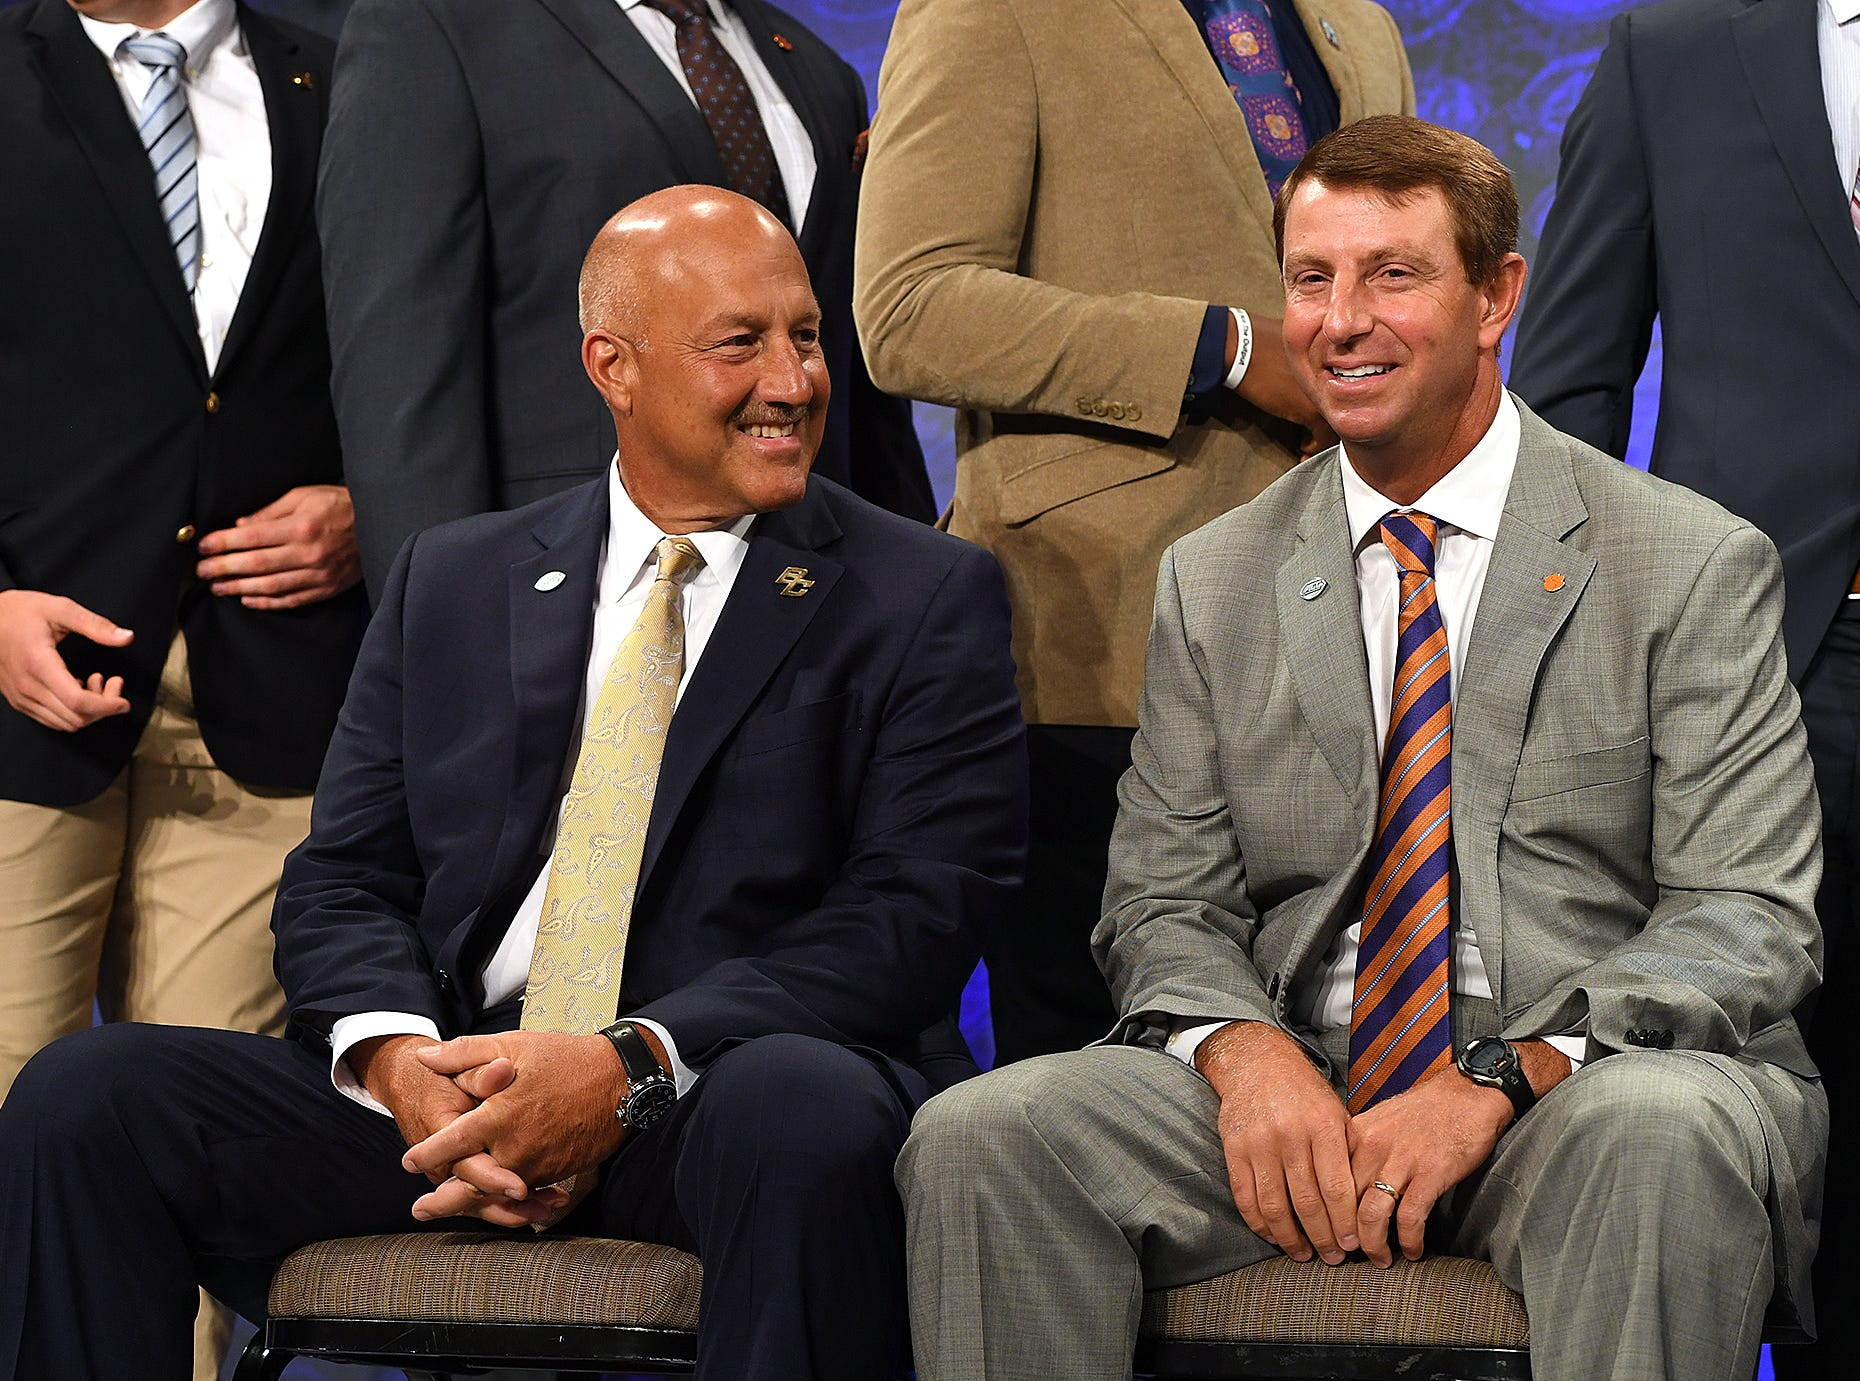 Clemson head coach Dabo Swinney, right, sits with Boston College head coach Steve Addazio while waiting on the Atlantic Division group photo at the ACC Football Kickoff in Charlotte, N.C., Thursday, July 19, 2018.